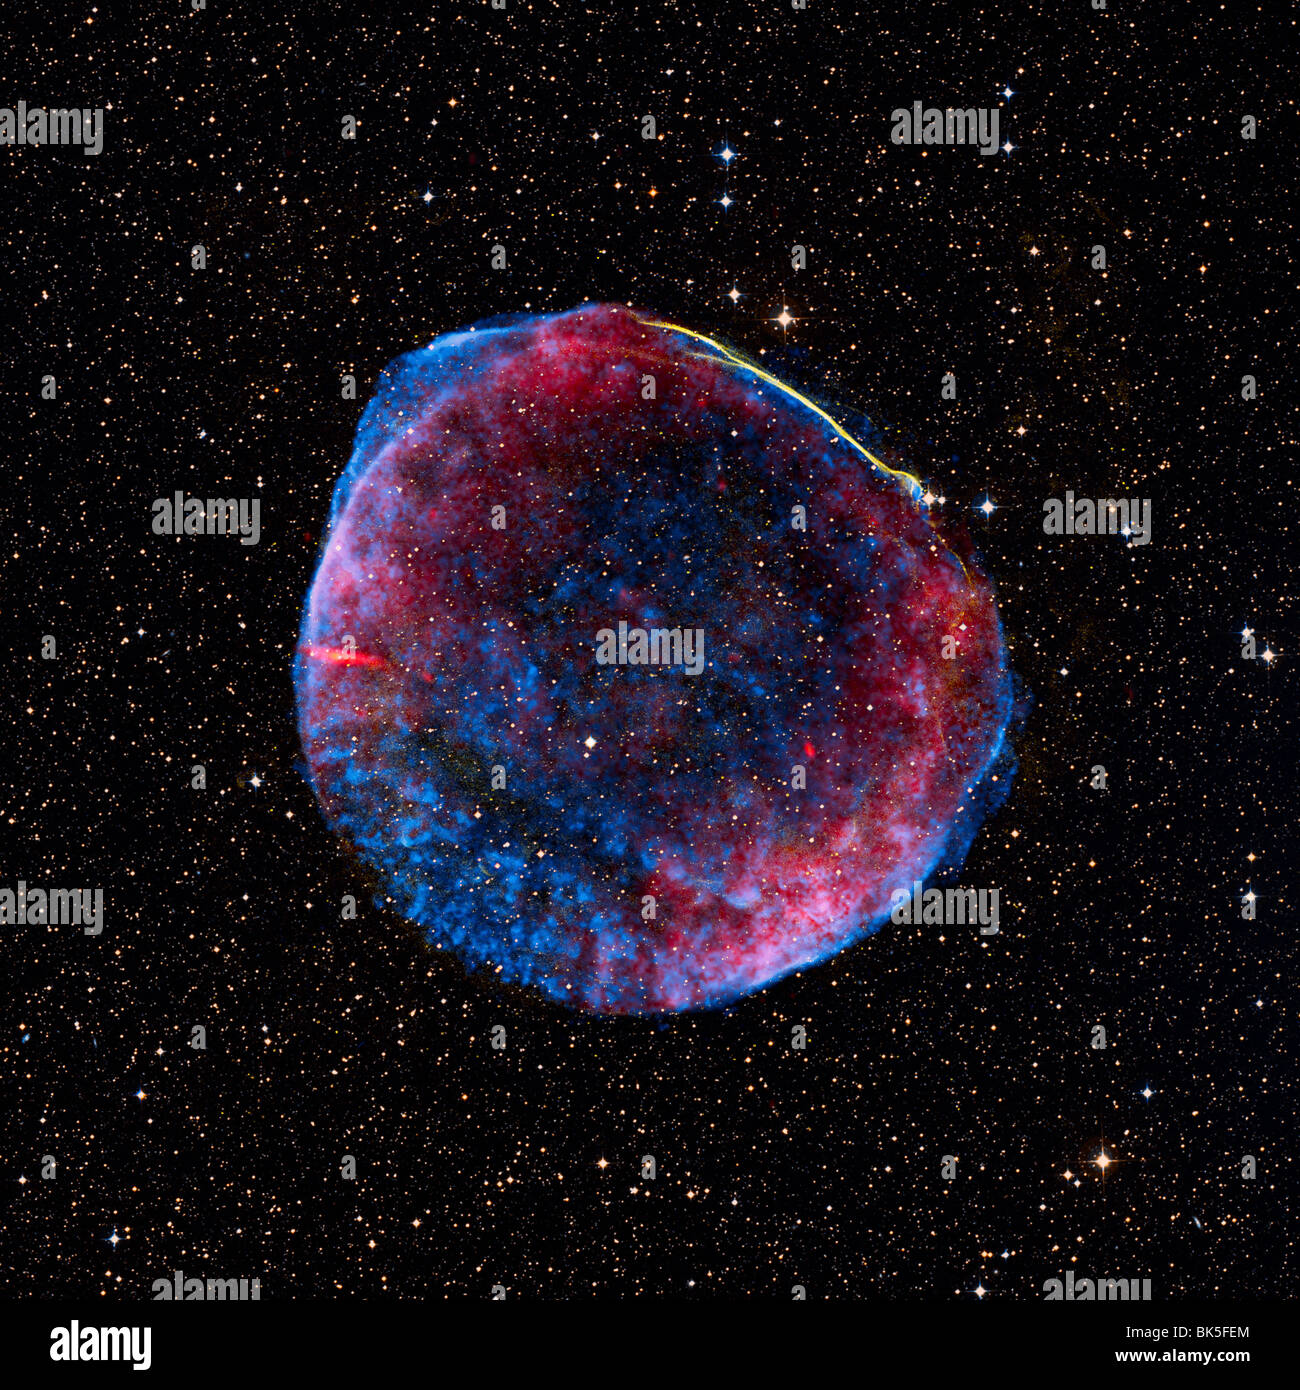 A composite image of the SN 1006 supernova remnant, which is located about 7000 light years from Earth - Stock Image